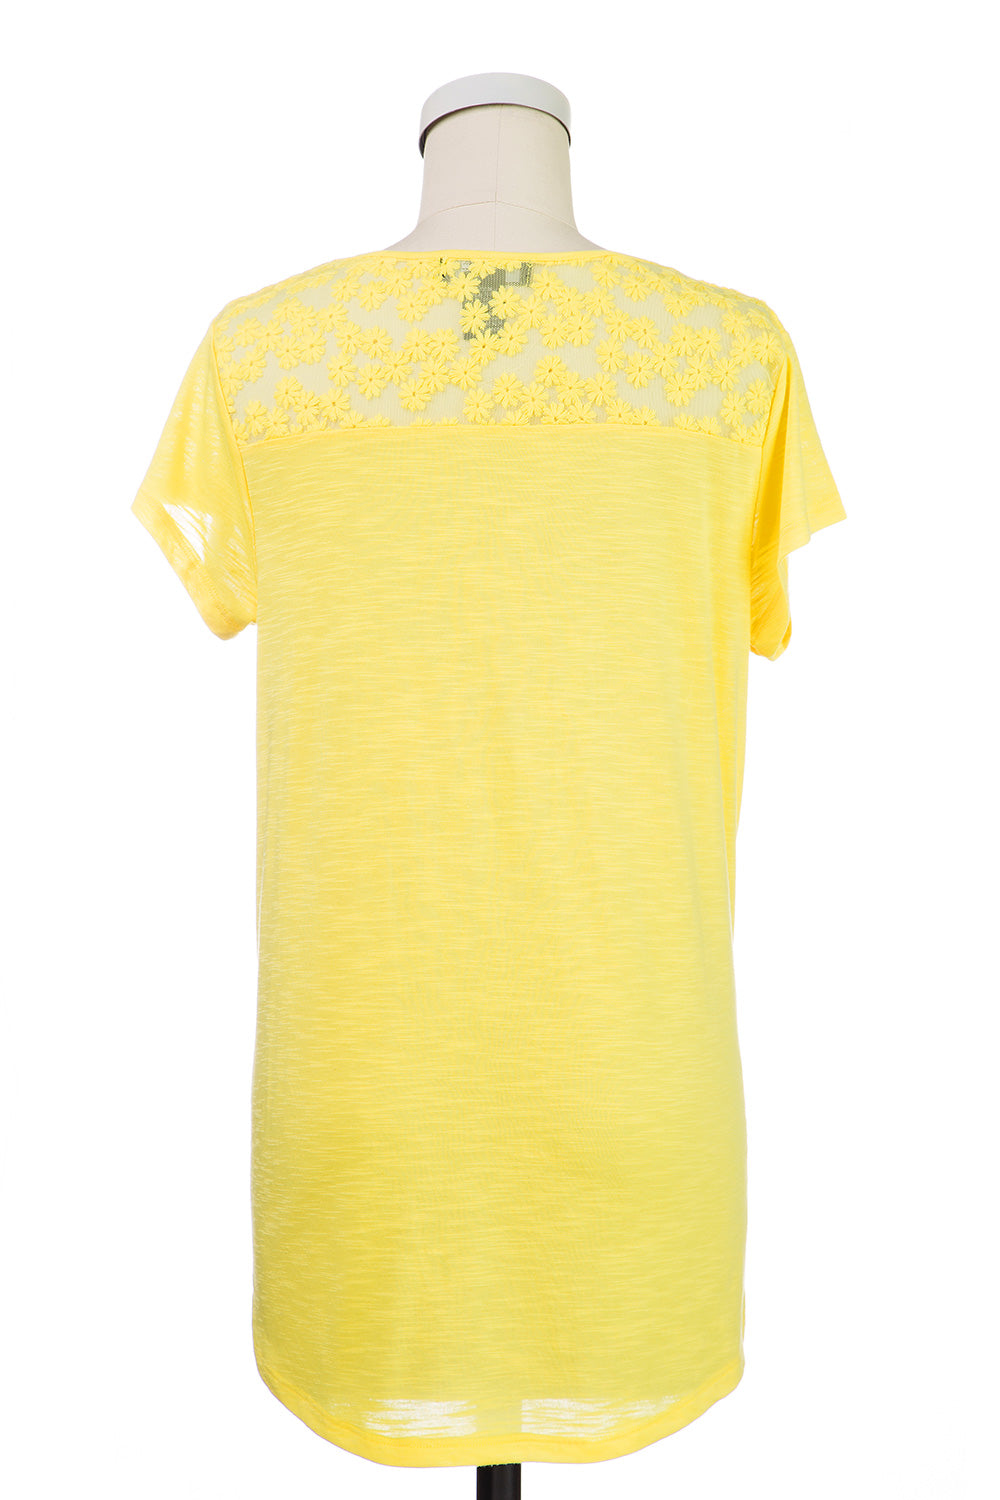 Type 1 Dandy Daisy Top